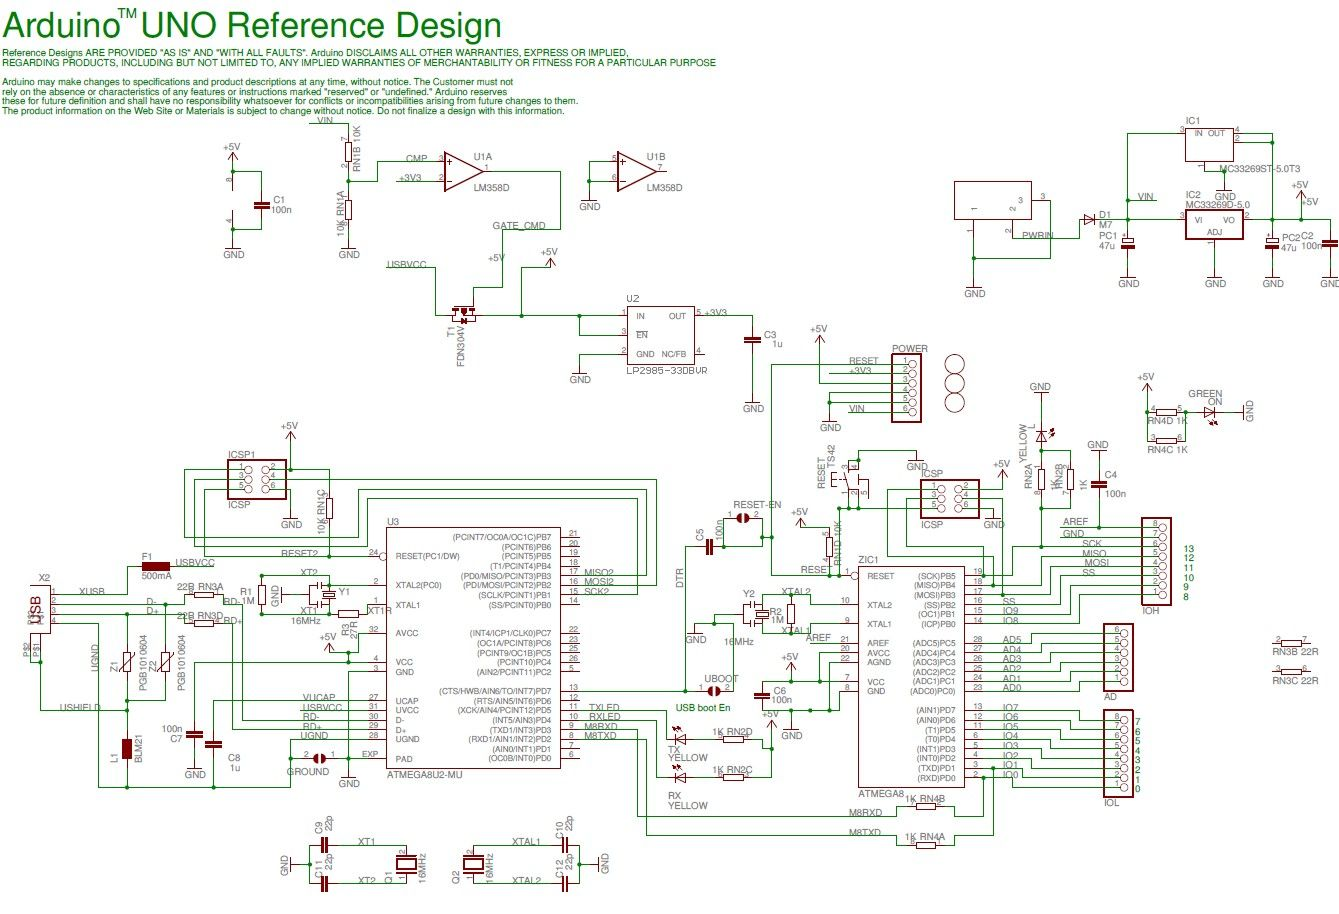 arduino uno circuit diagram pdf simple wiring diagrams arduino uno animation arduino uno full circuit diagram [ 1339 x 914 Pixel ]